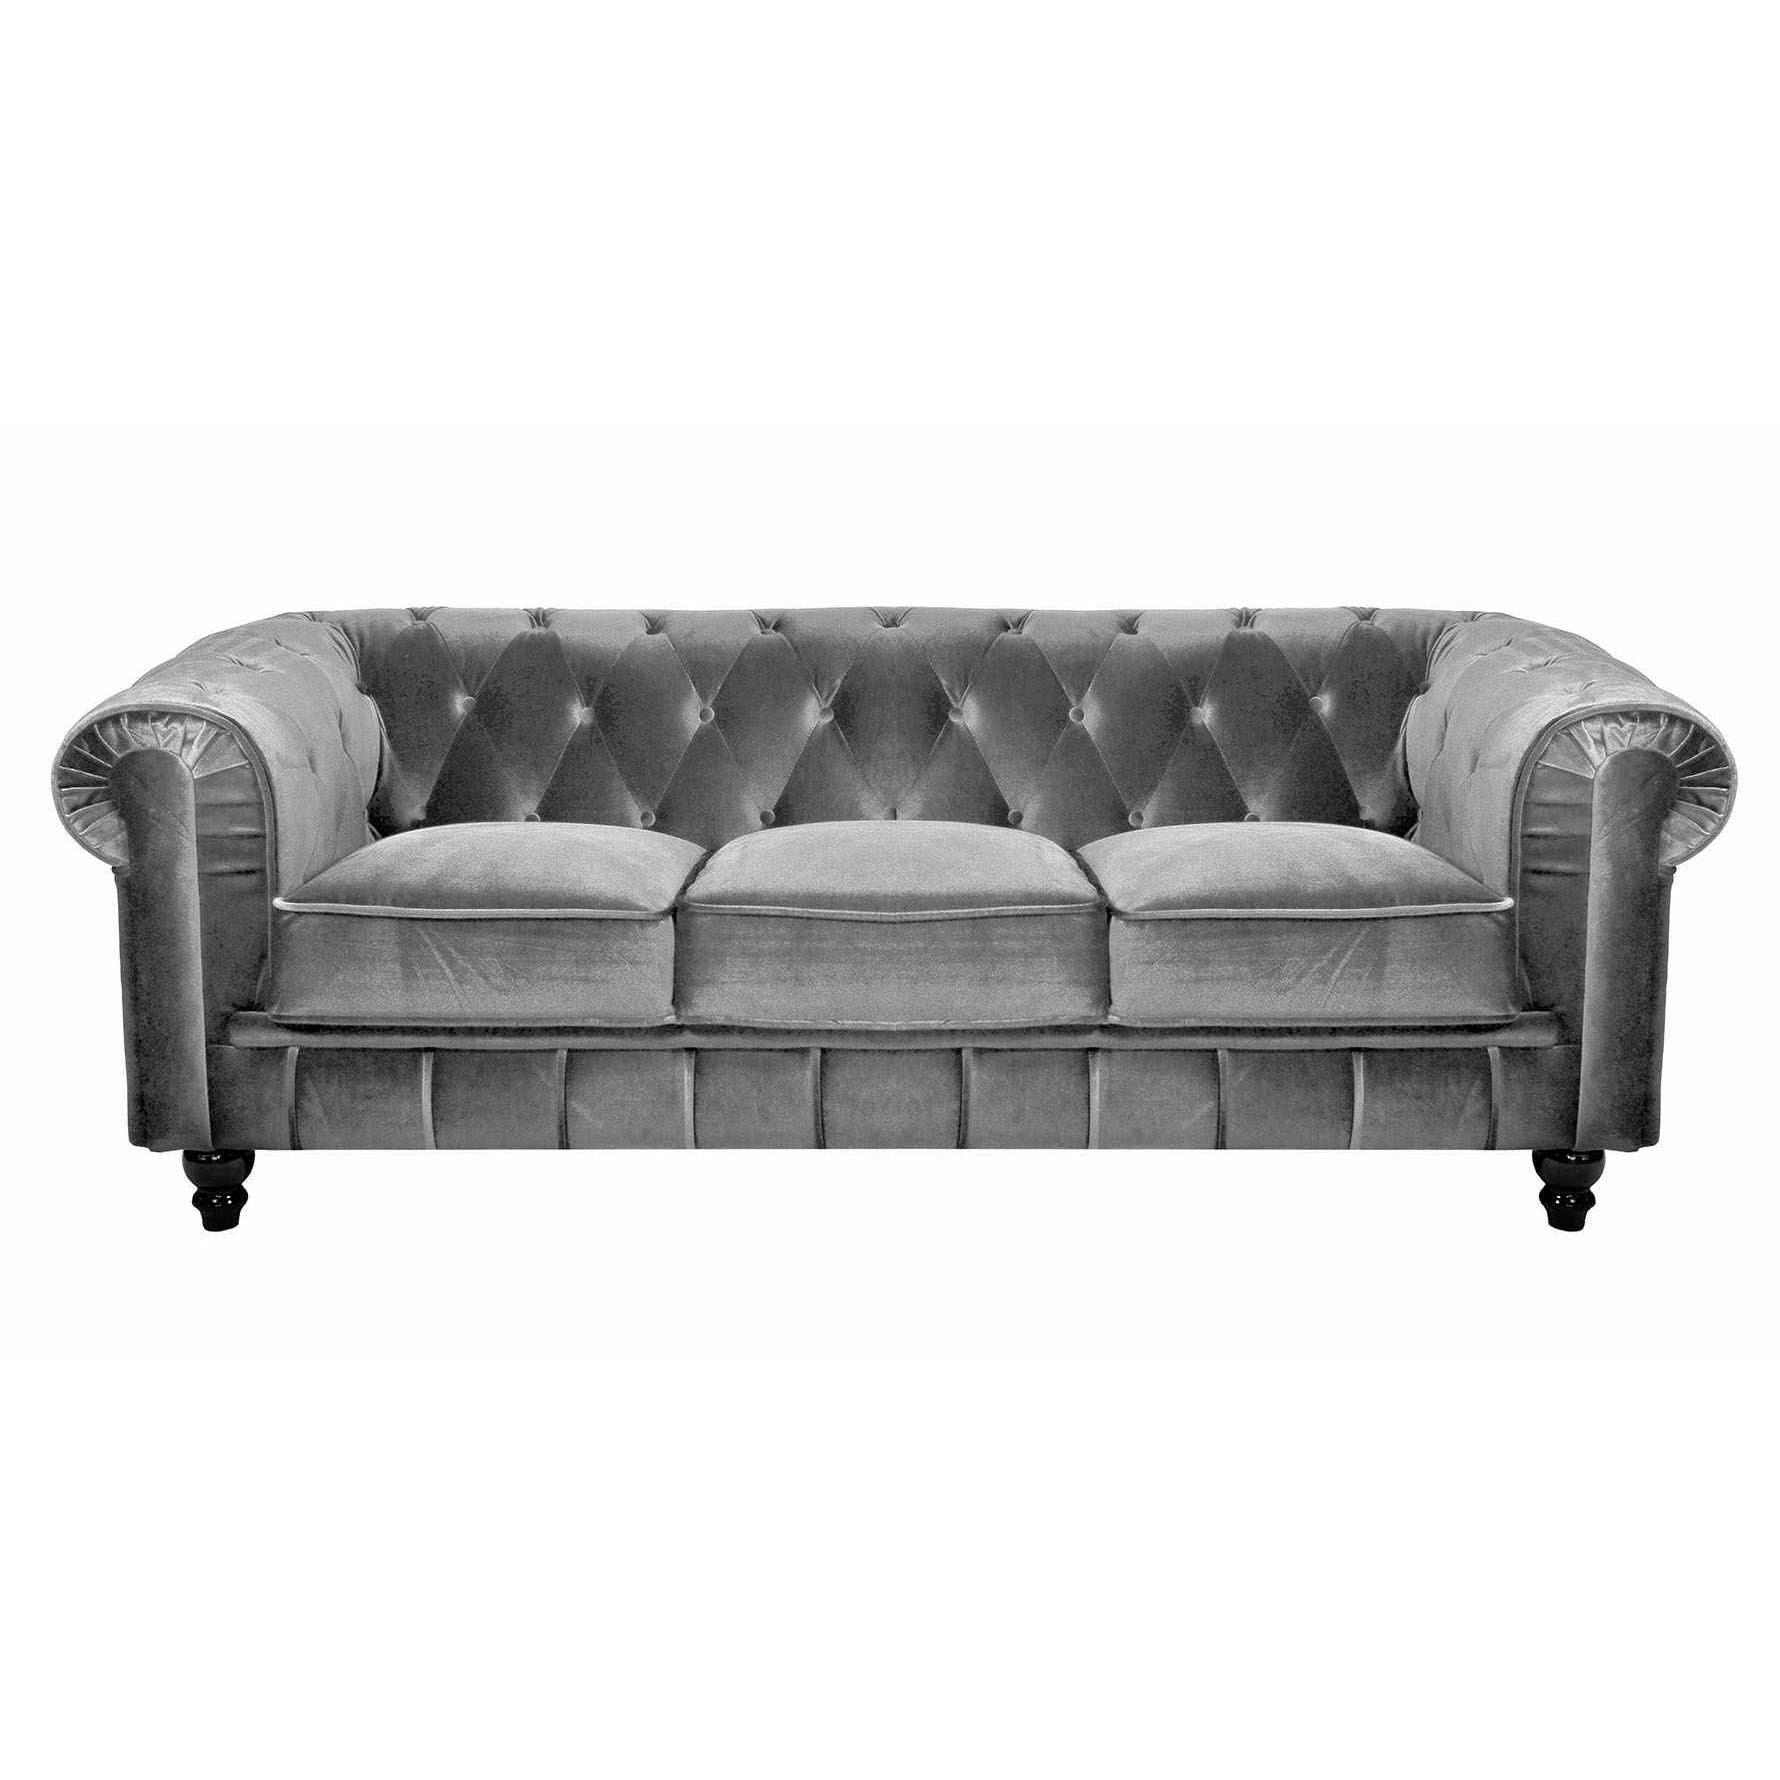 Deco in paris canape 3 places velours gris chesterfield - Canape chesterfield but ...